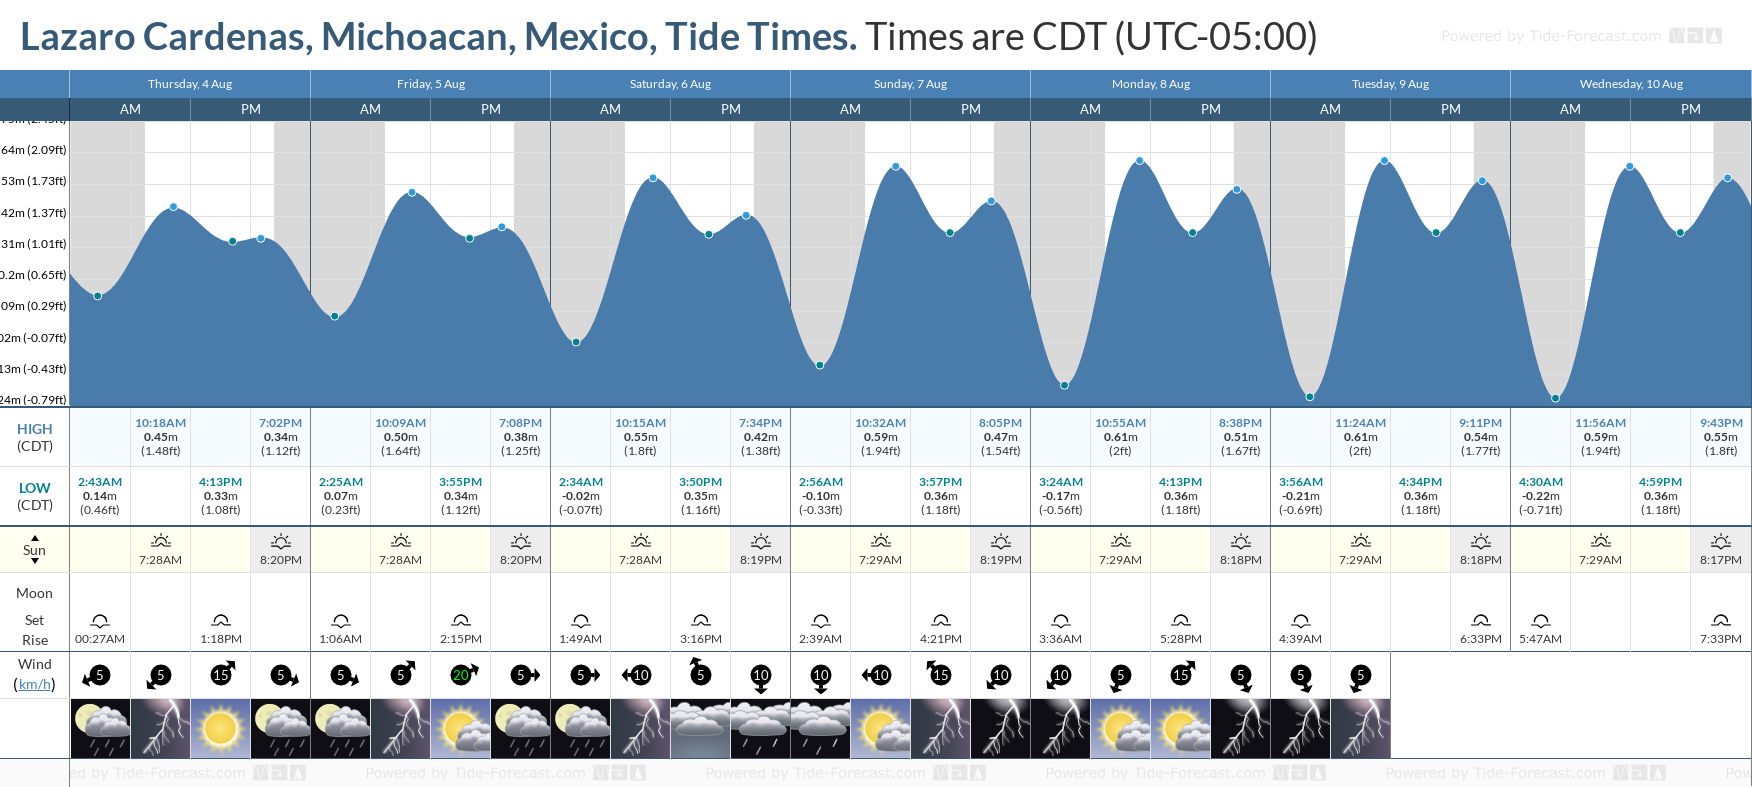 Lazaro Cardenas, Michoacan, Mexico Tide Chart including high and low tide tide times for the next 7 days